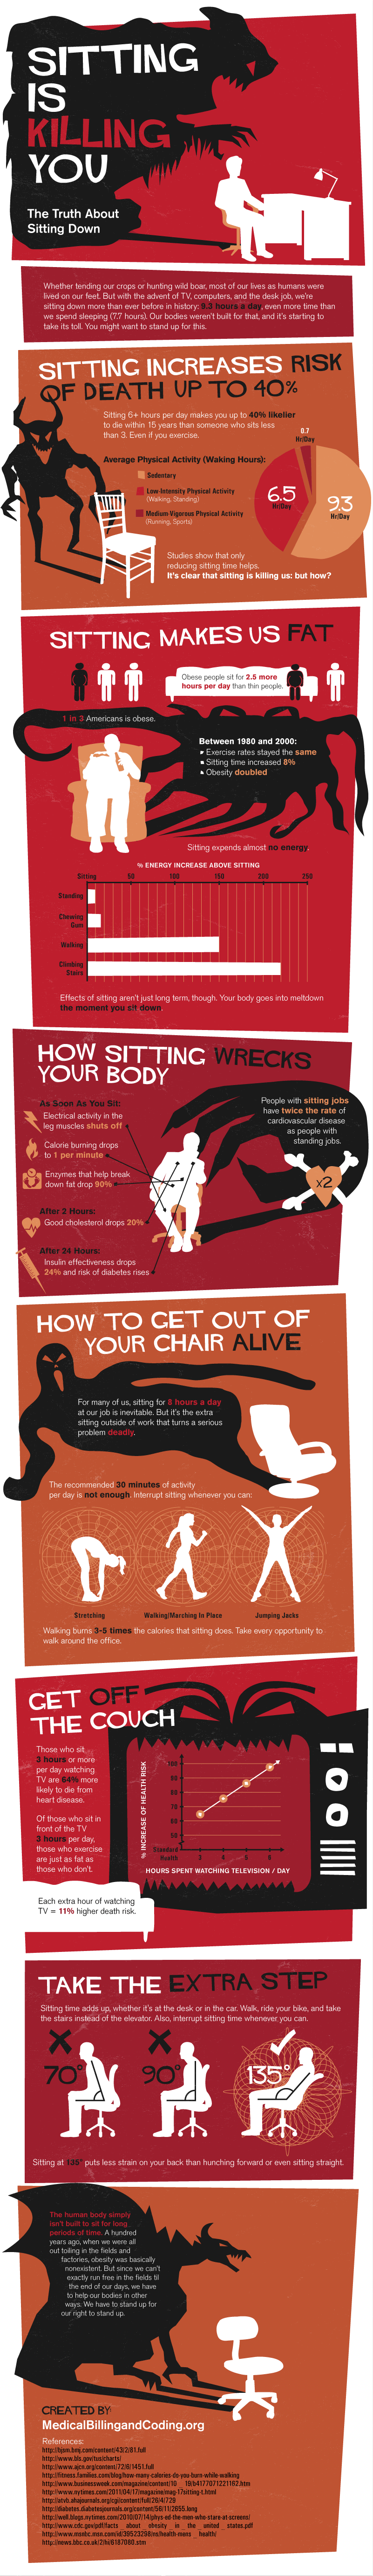 facts about Sitting Facts About Sitting And its Effects On Your Body